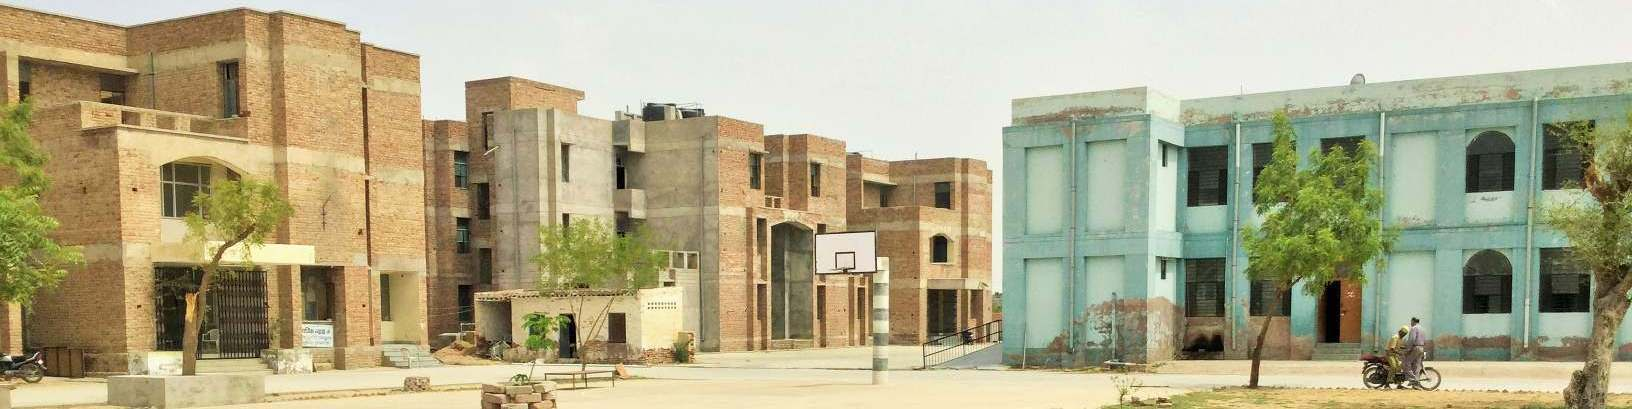 DEPARTMENT OF MANAGEMENT AND TECHNOLOGY, ENGINEERING COLLEGE BIKANER